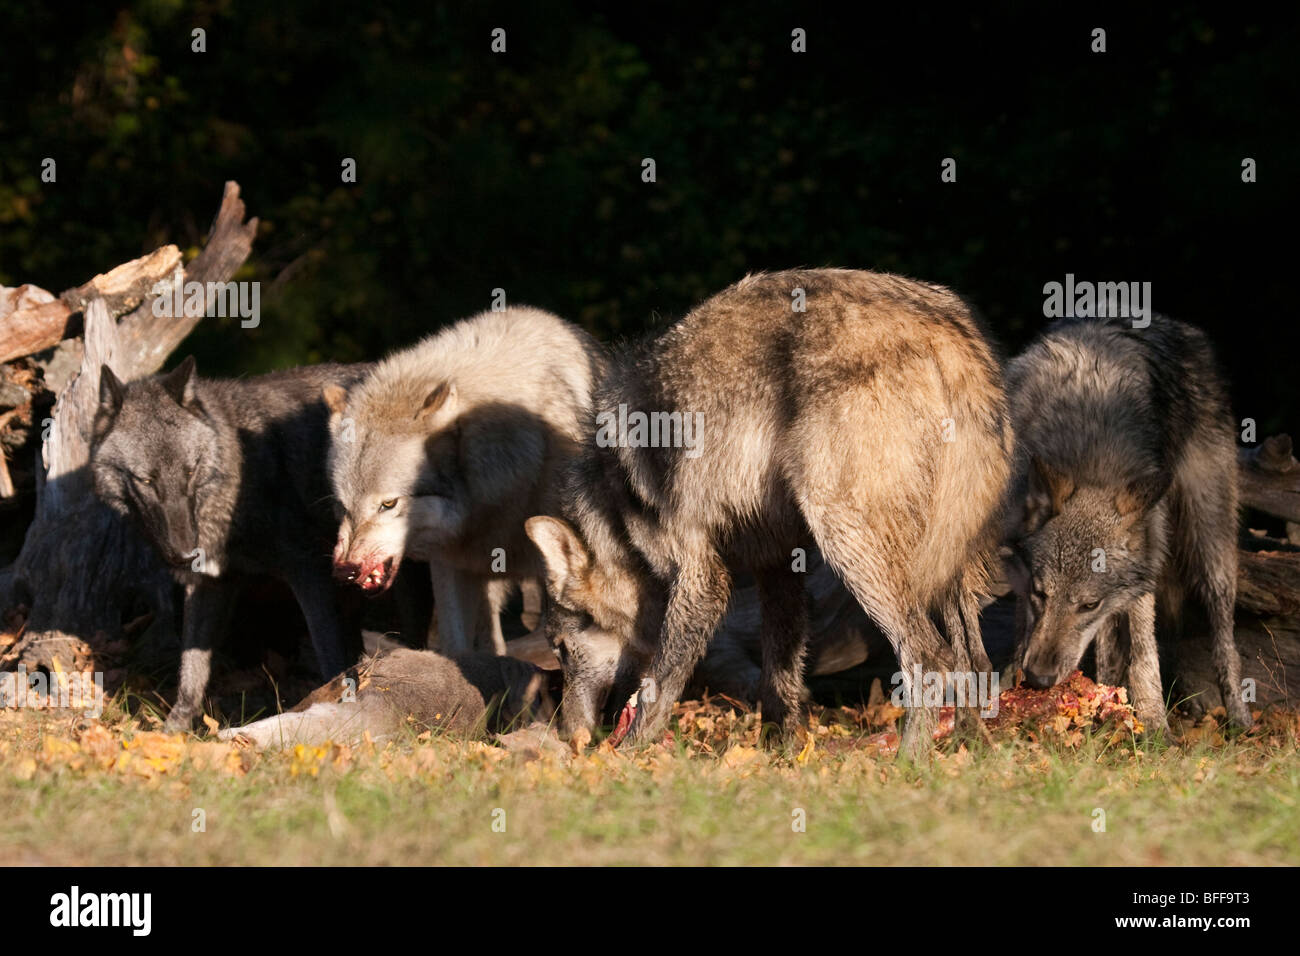 Wolf pack consuming a deer carcass, one wolf snarling at the others. - Stock Image